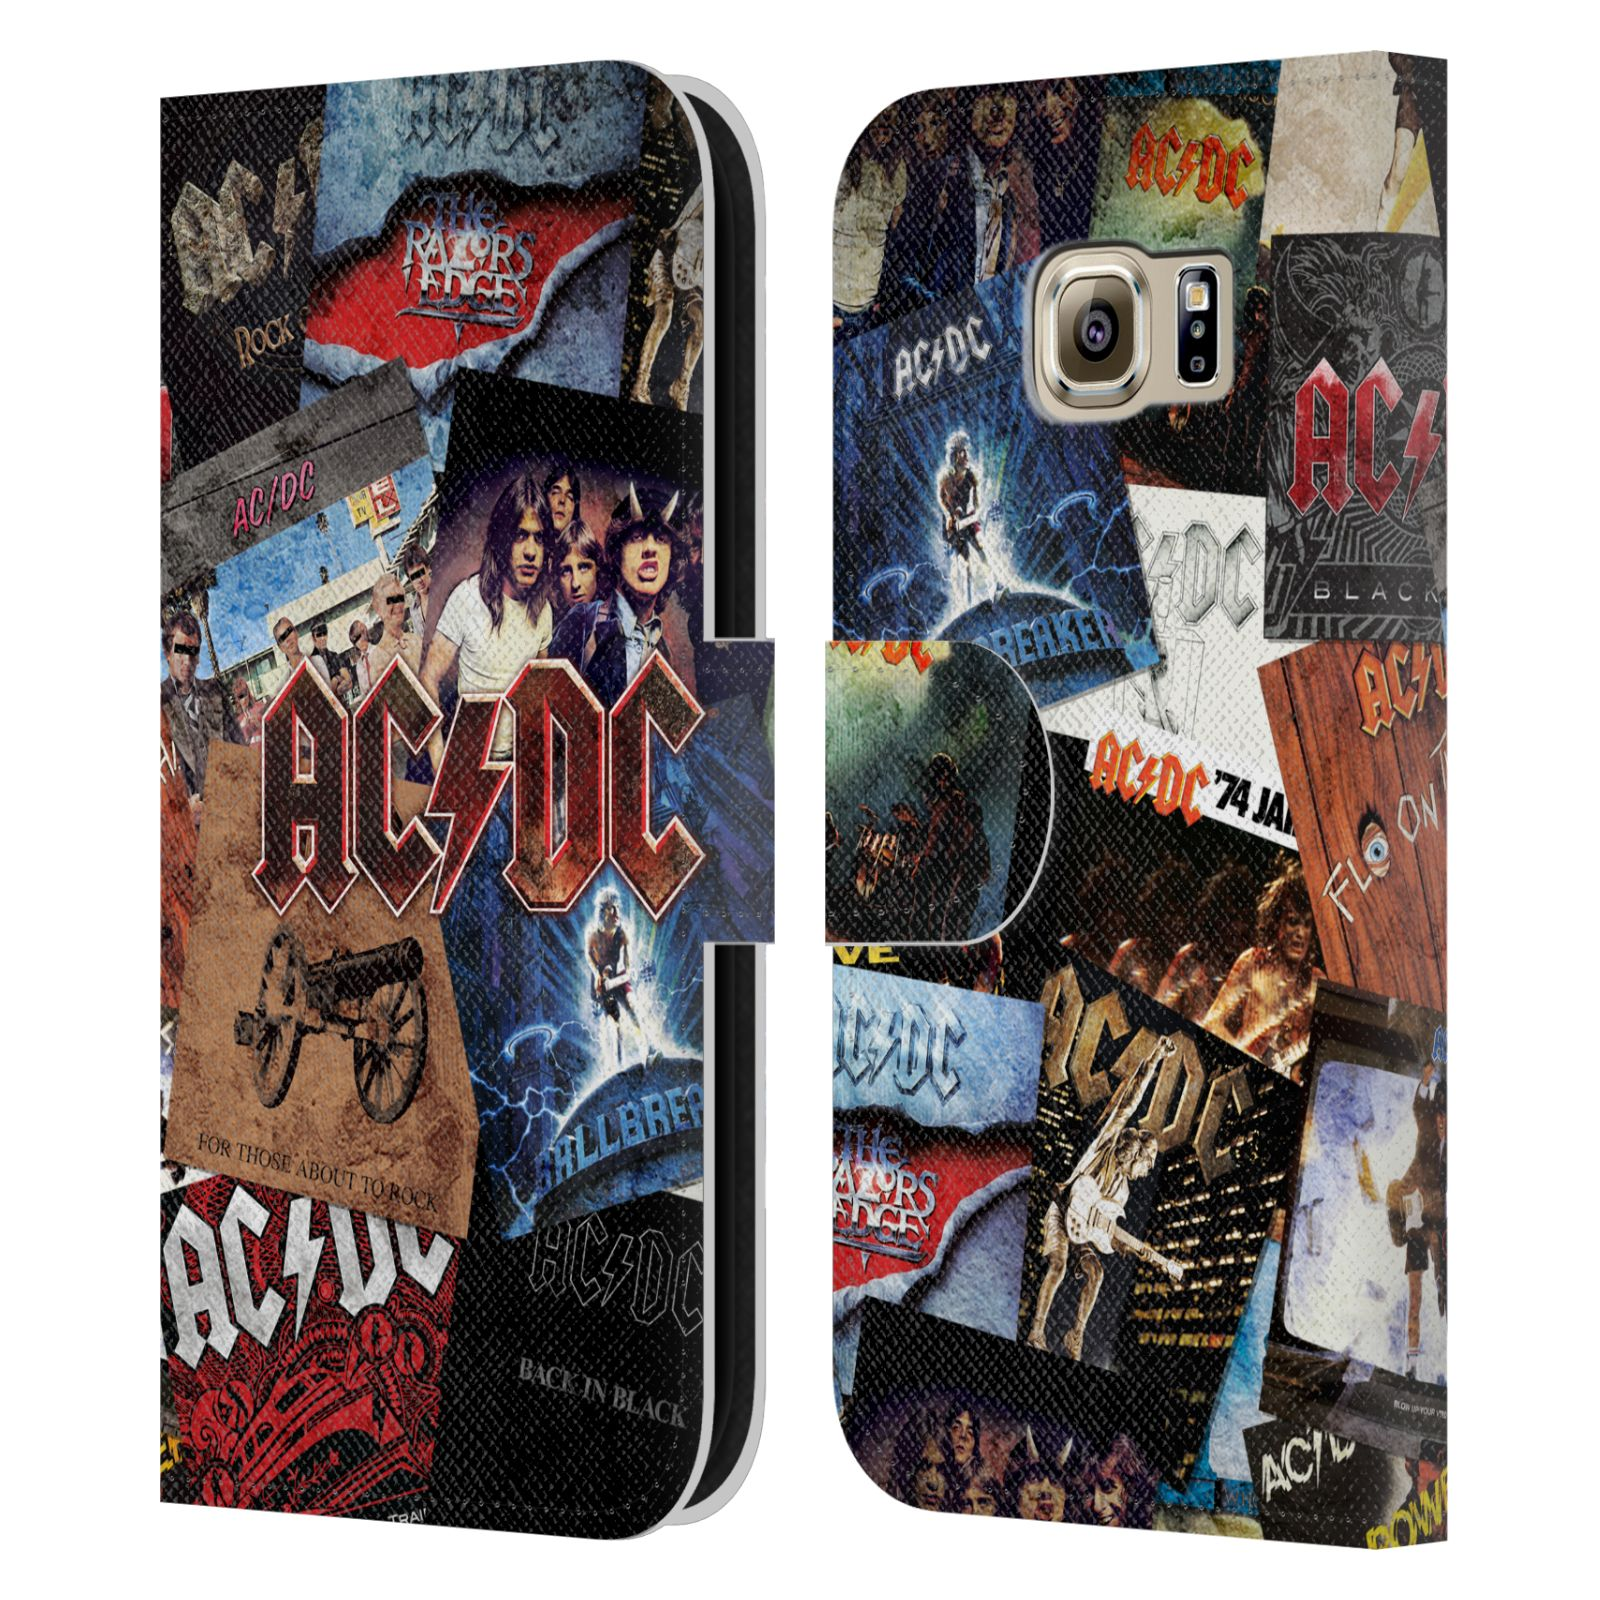 Book Cover Collage Name : Official ac dc acdc collage leather book wallet case cover